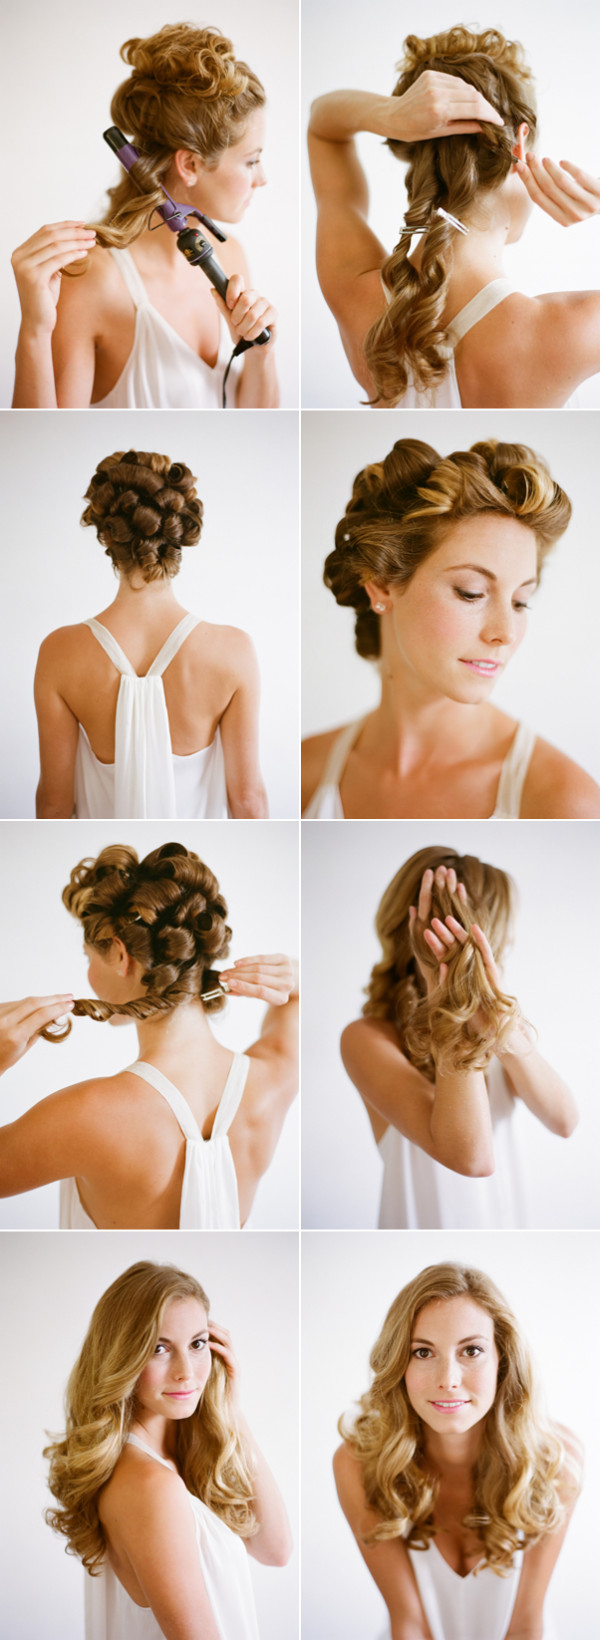 wedding-hairstyles-for-long-hair-600x1640